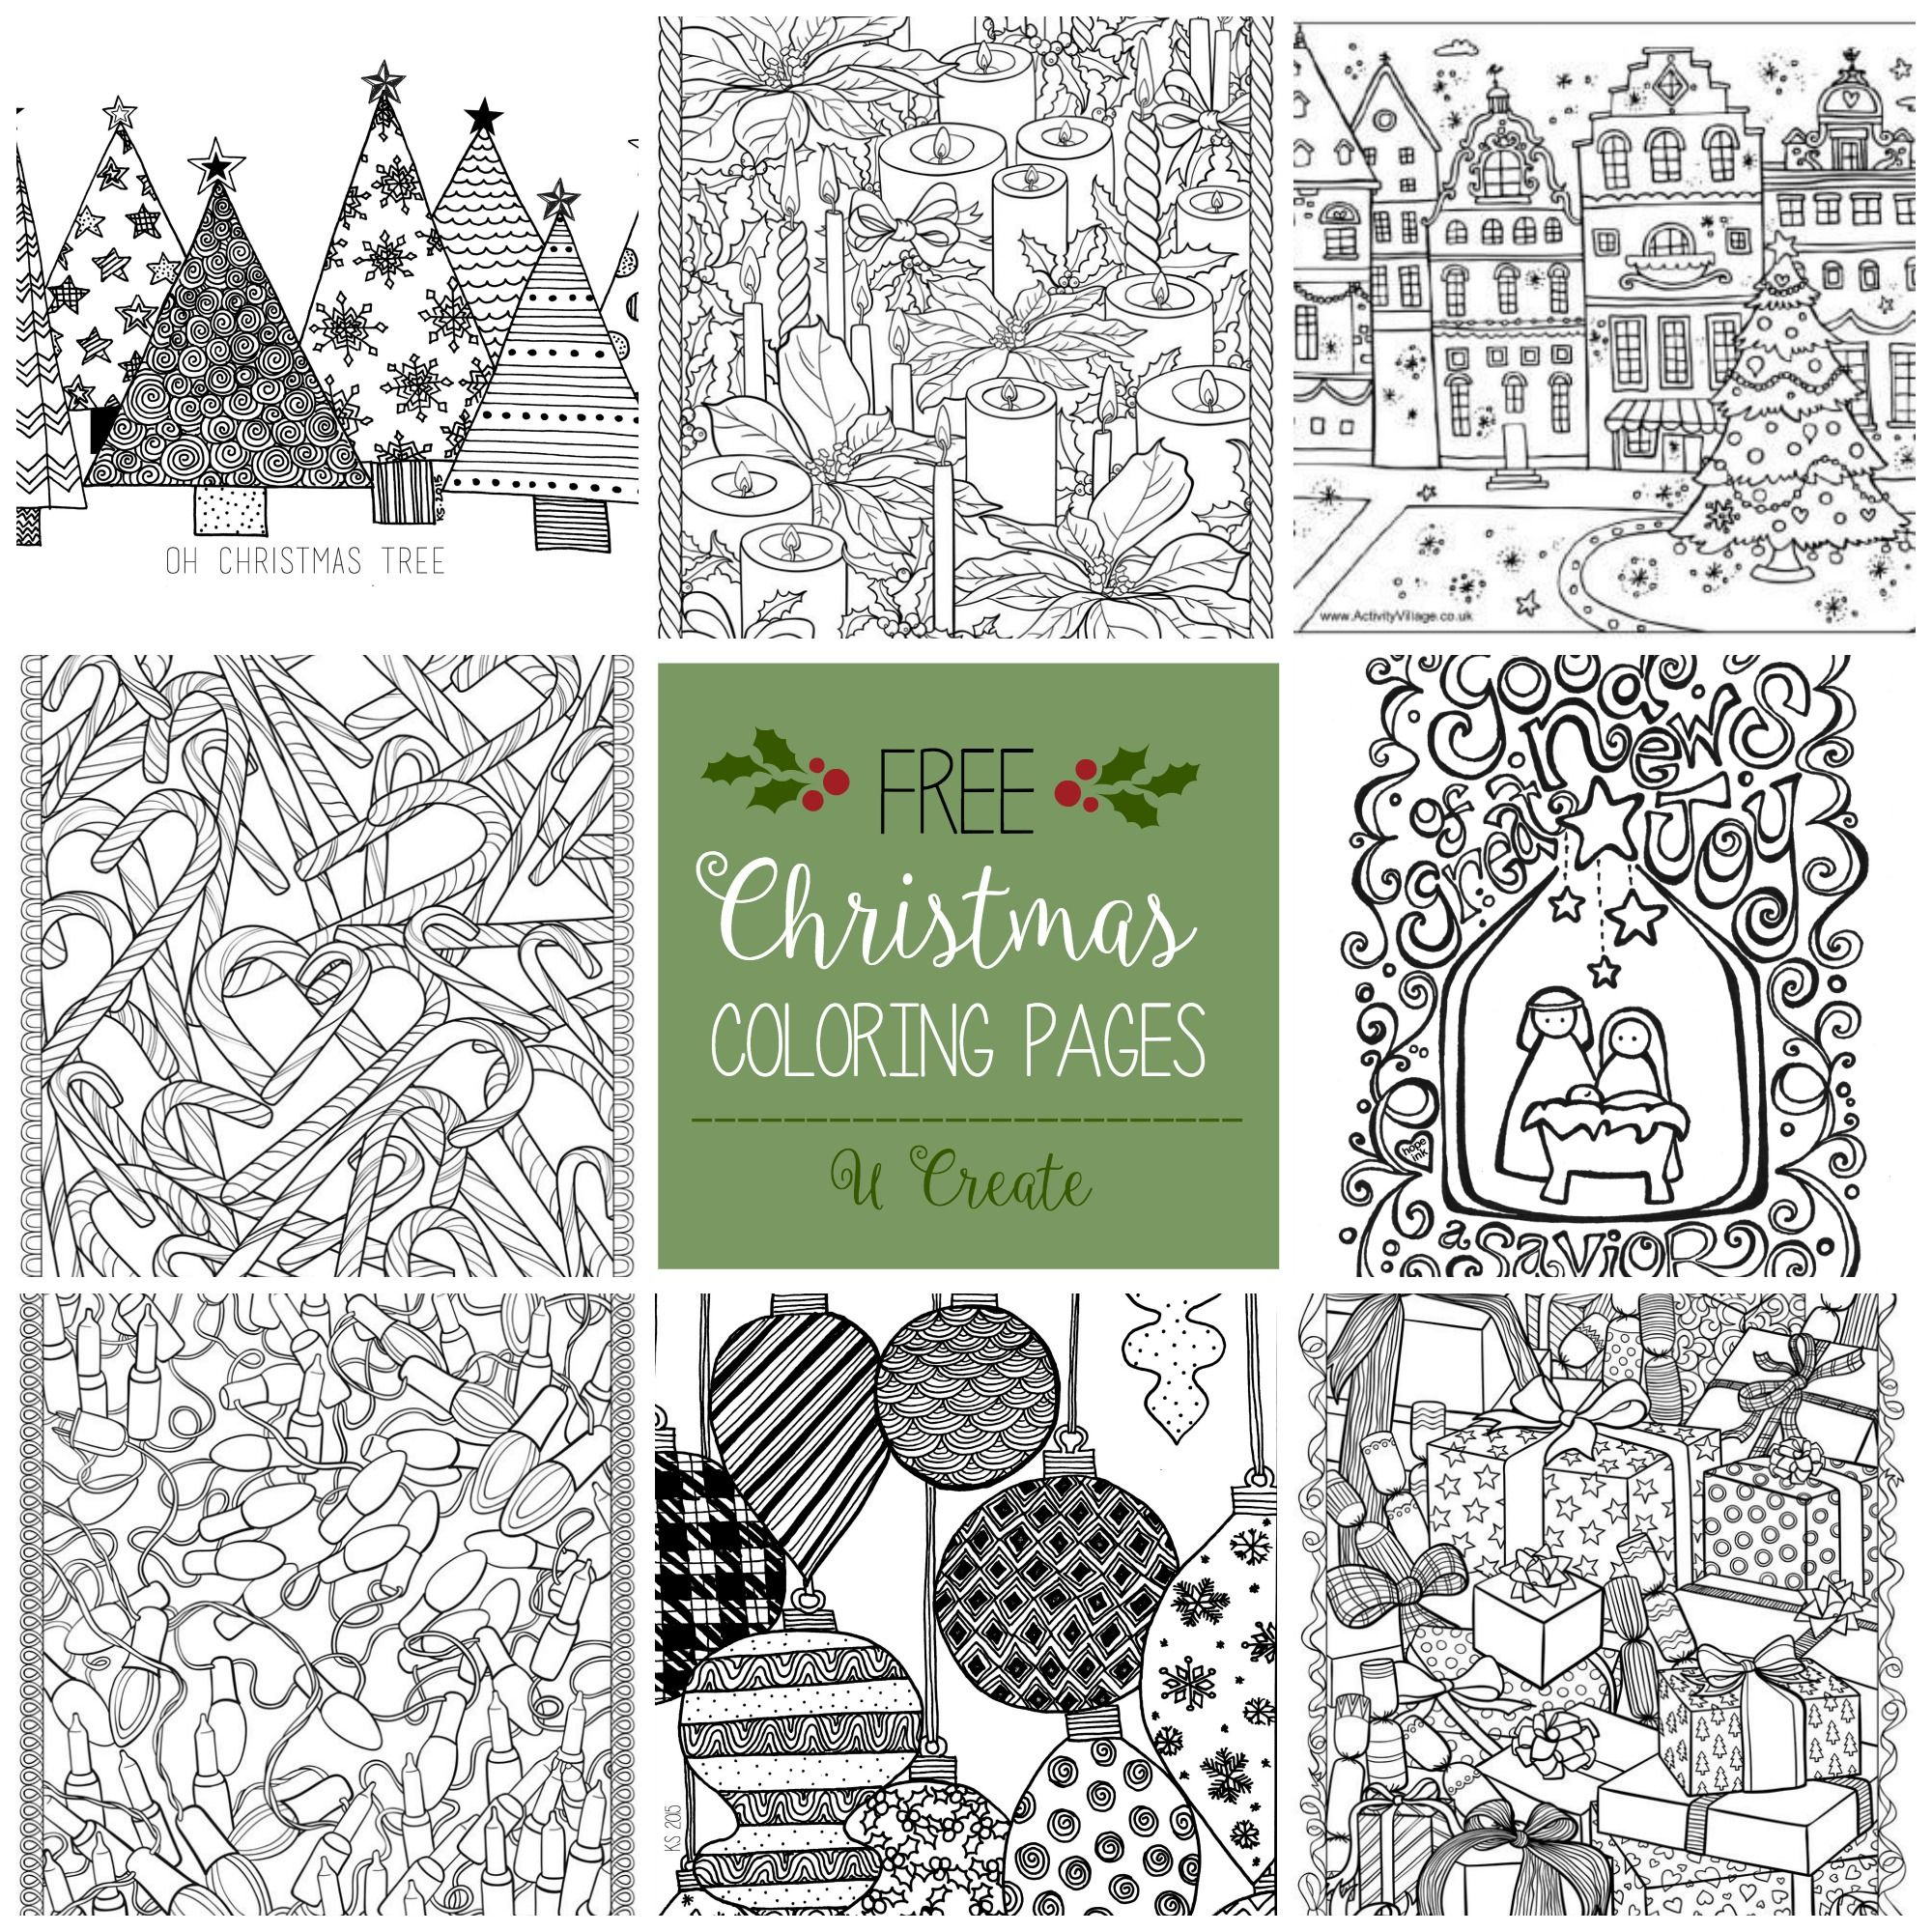 Merry Christmas Coloring Banner (U Create) | Adult coloring ...